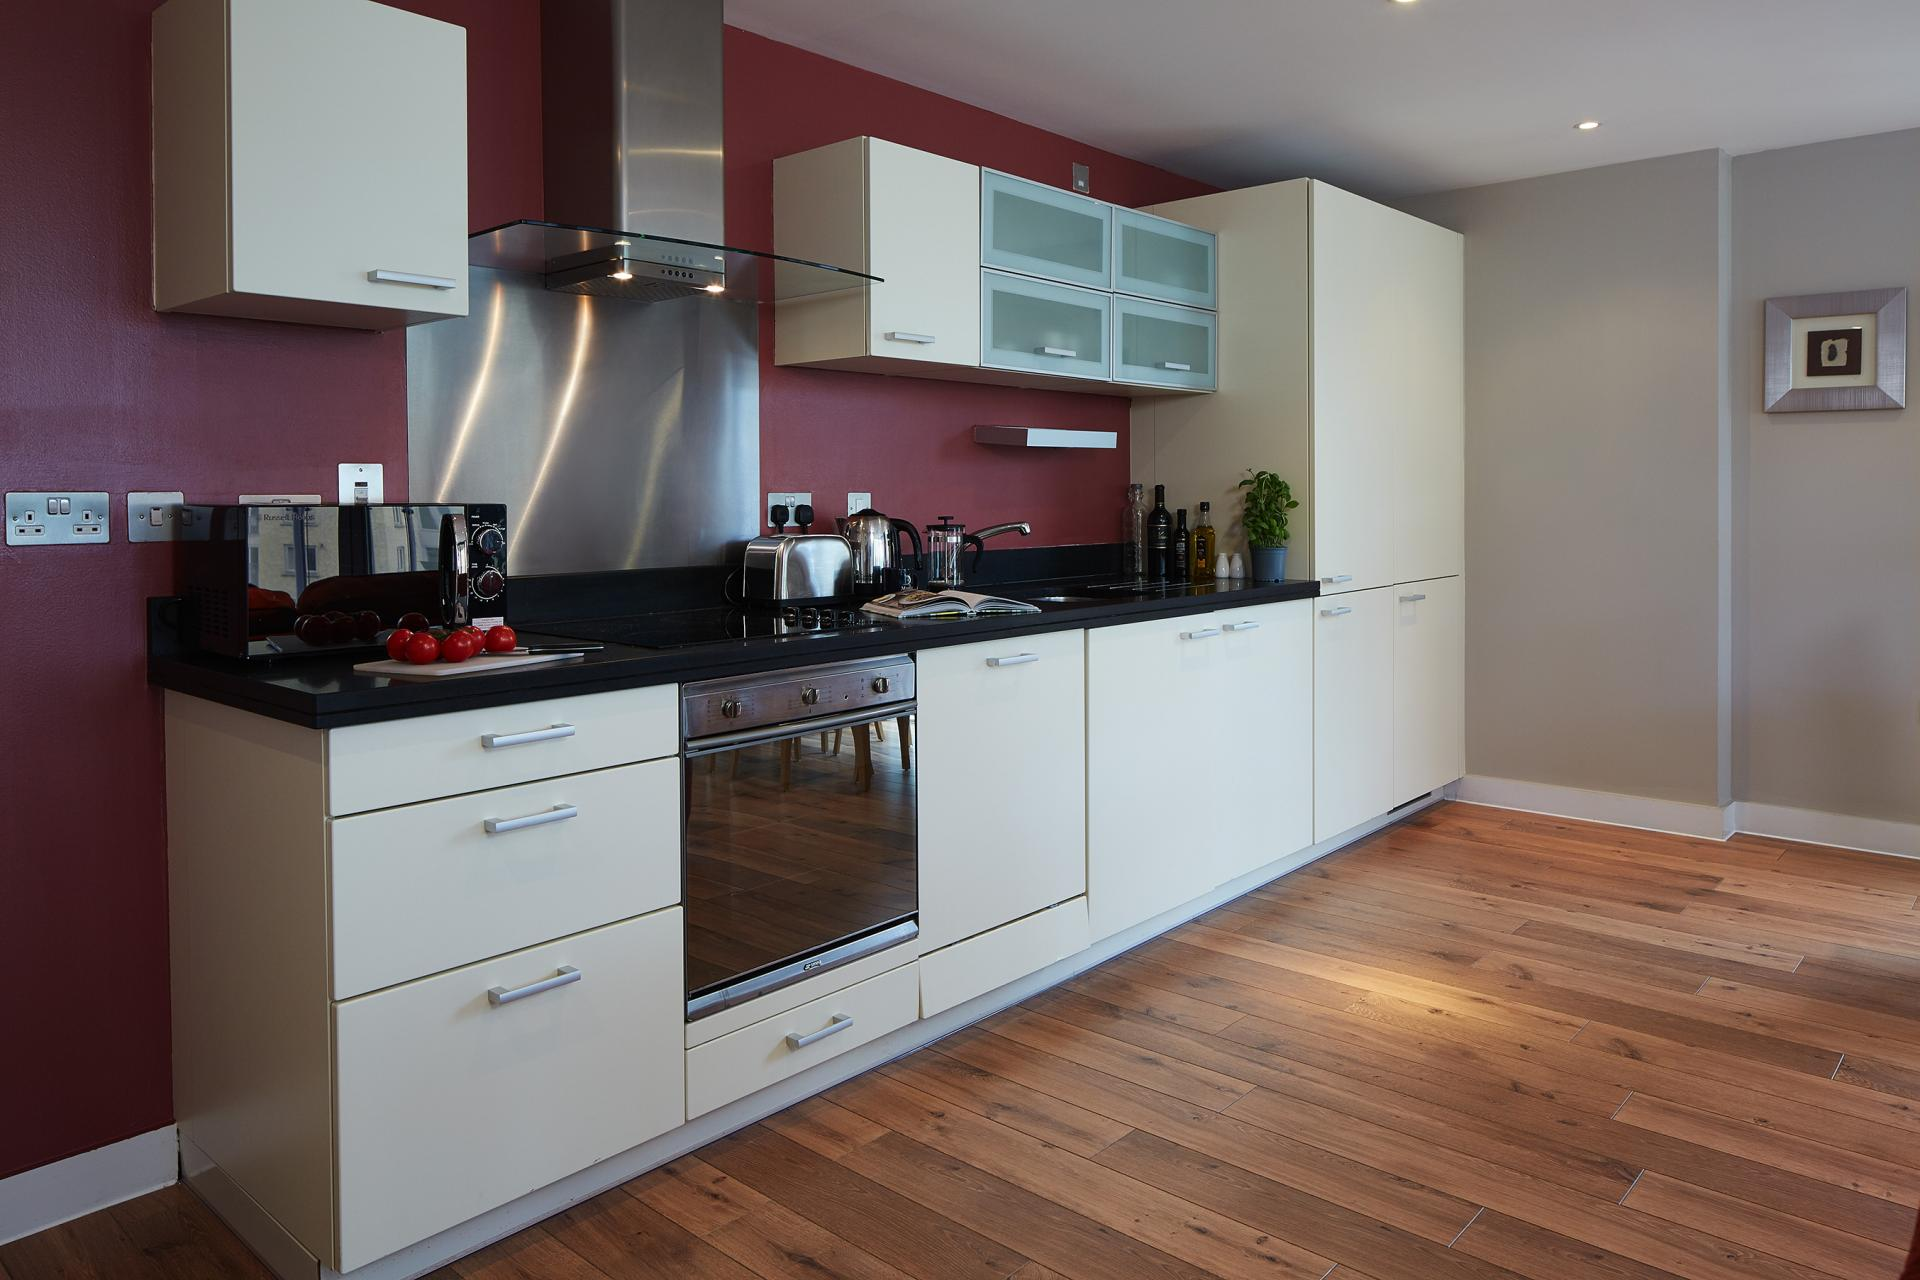 Kitchen at Marlin Canary Wharf Apartments, Canary Wharf, London - Citybase Apartments